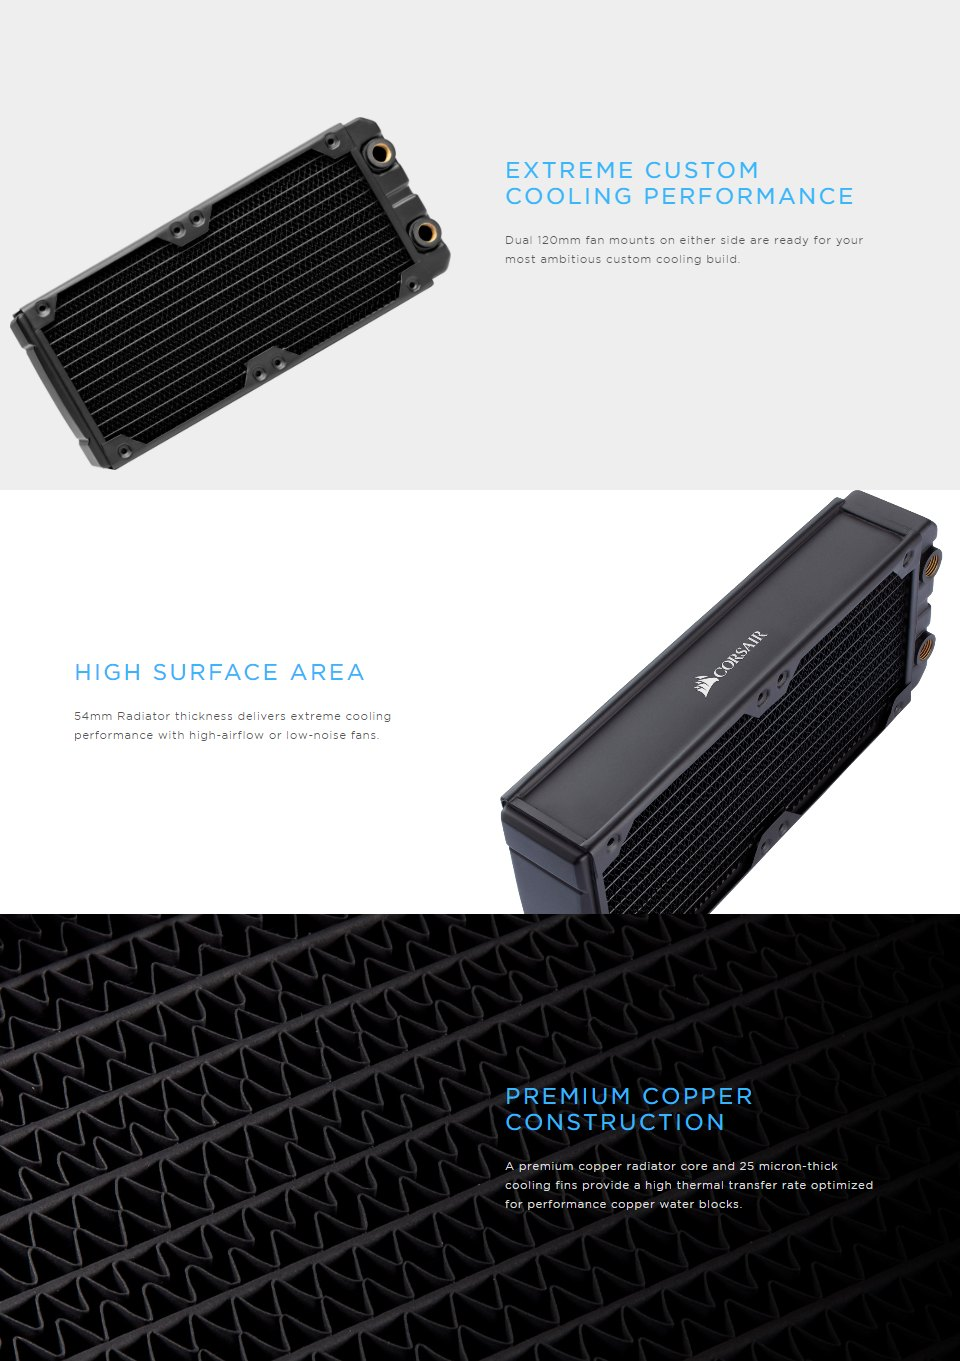 Corsair Hydro X Series XR7 240mm Water Cooling Radiator features